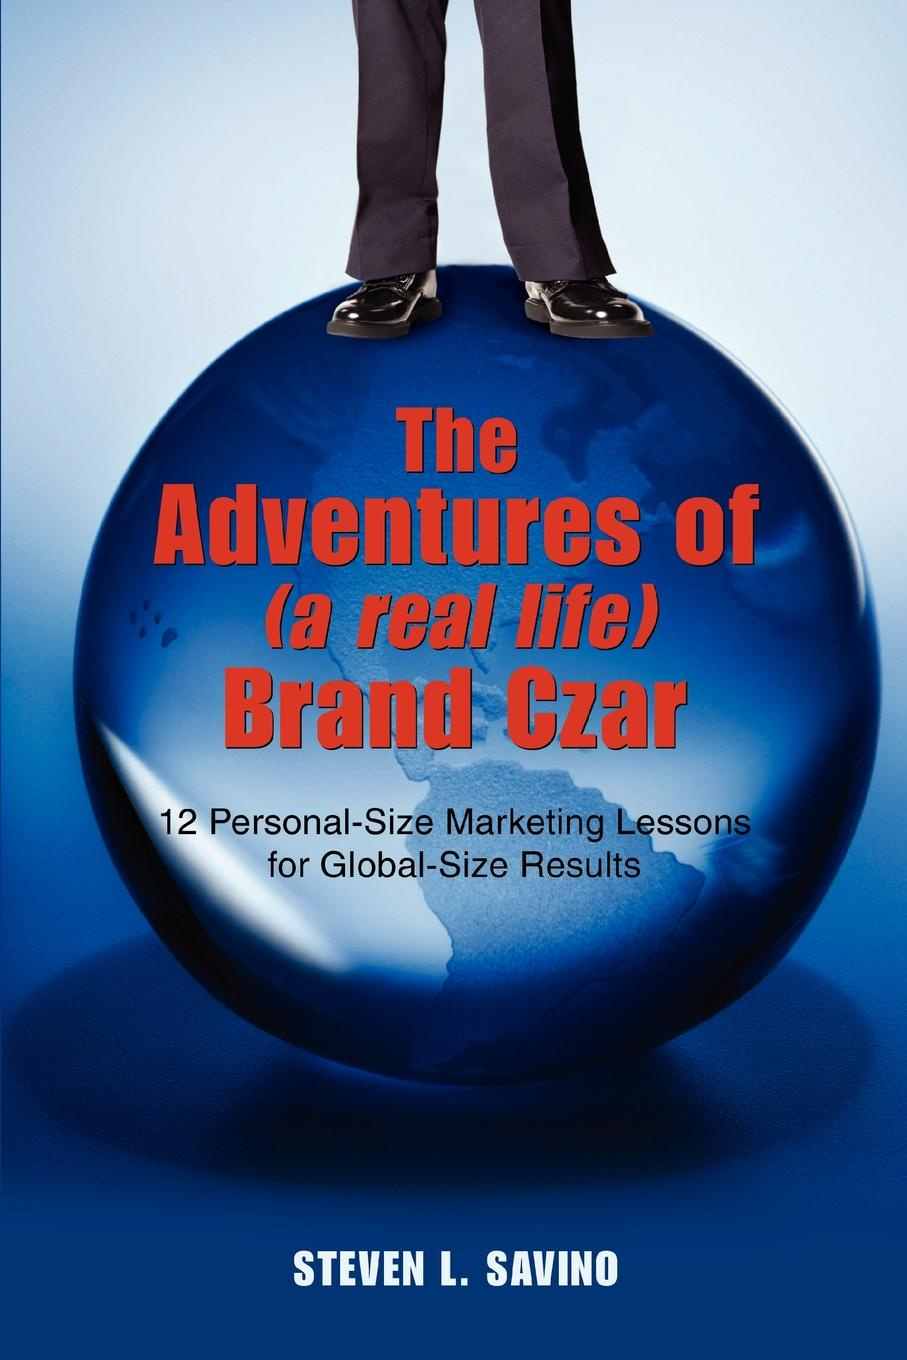 Steven L Savino The Adventures of (a real life) Brand Czar. 12 Personal-Size Marketing Lessons for Global-Size Results